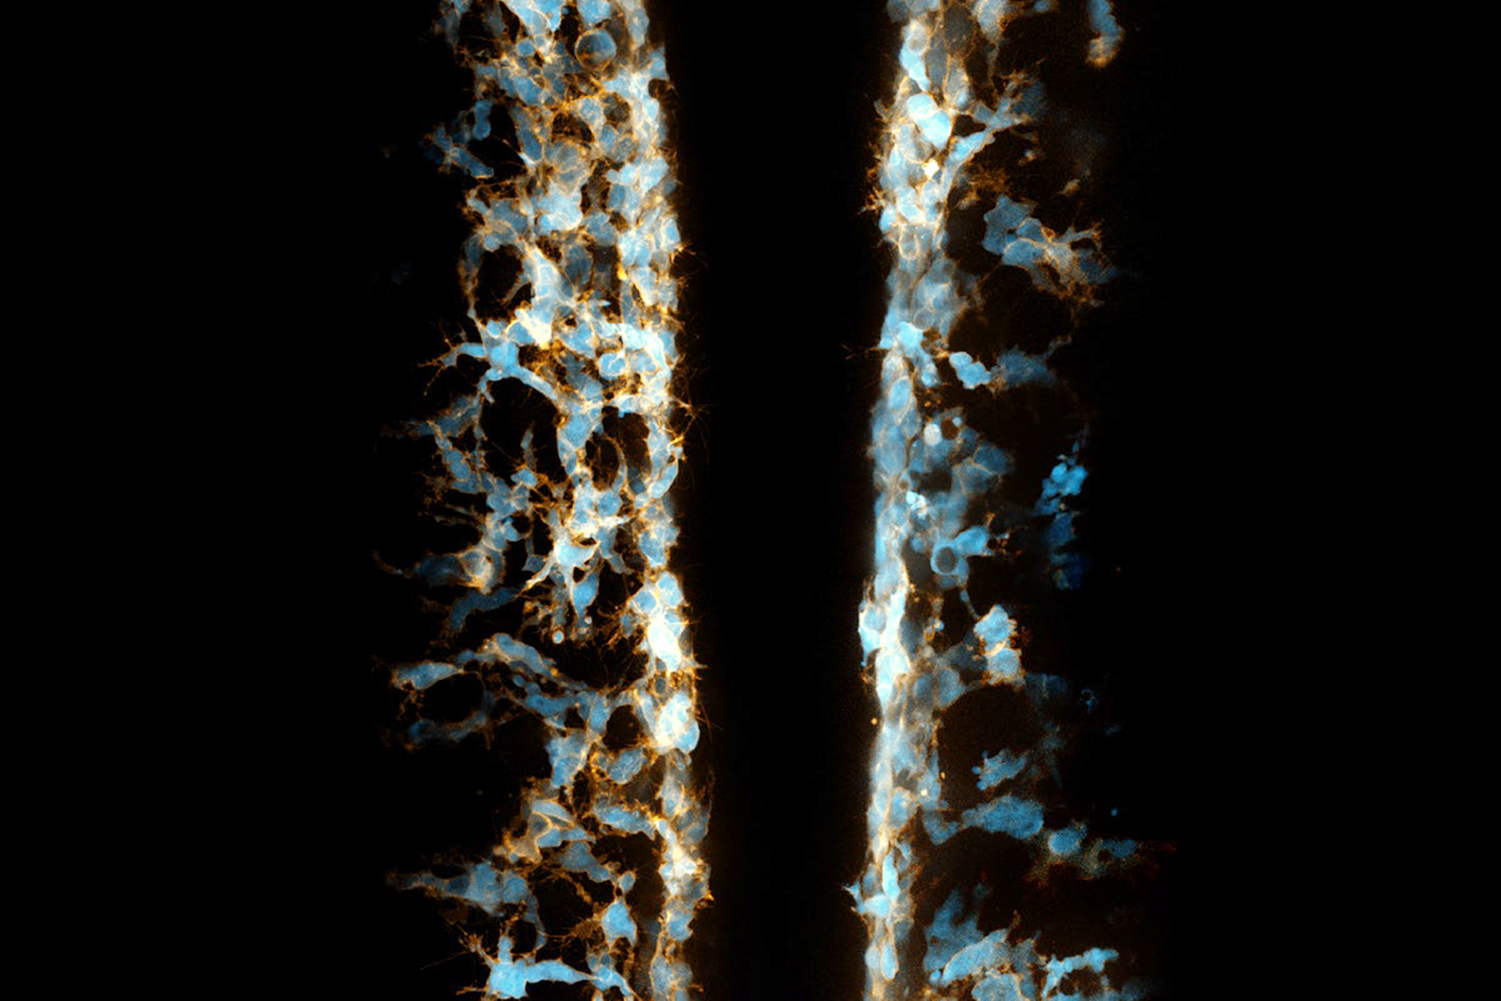 Zebrafish embryo neural crest cells (in blue) remove dead cells prior to the development of immune system cells that will take on that task.